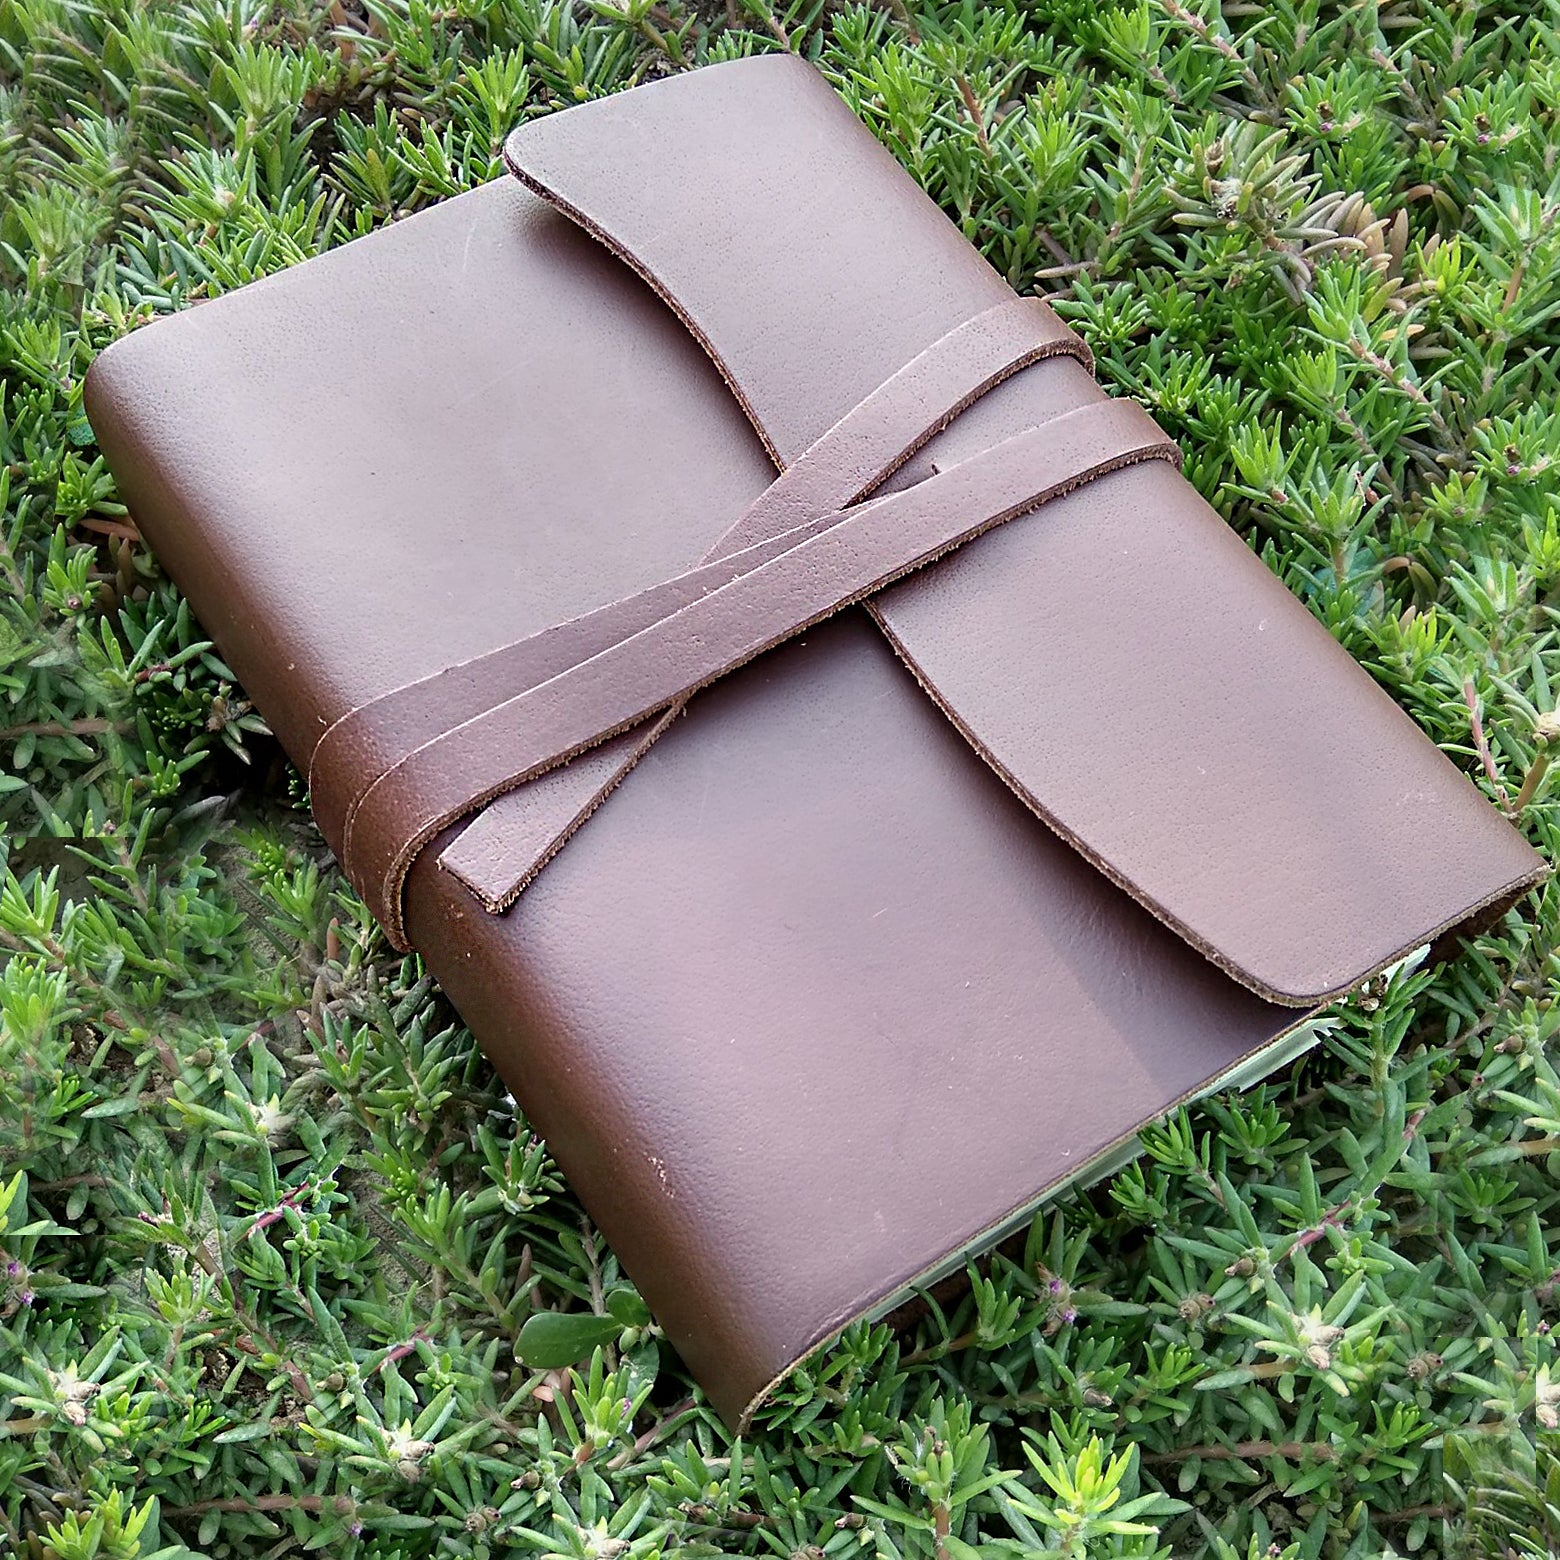 Visionary Handmade Medium Vintage Style Leather Journal Diary Men Women